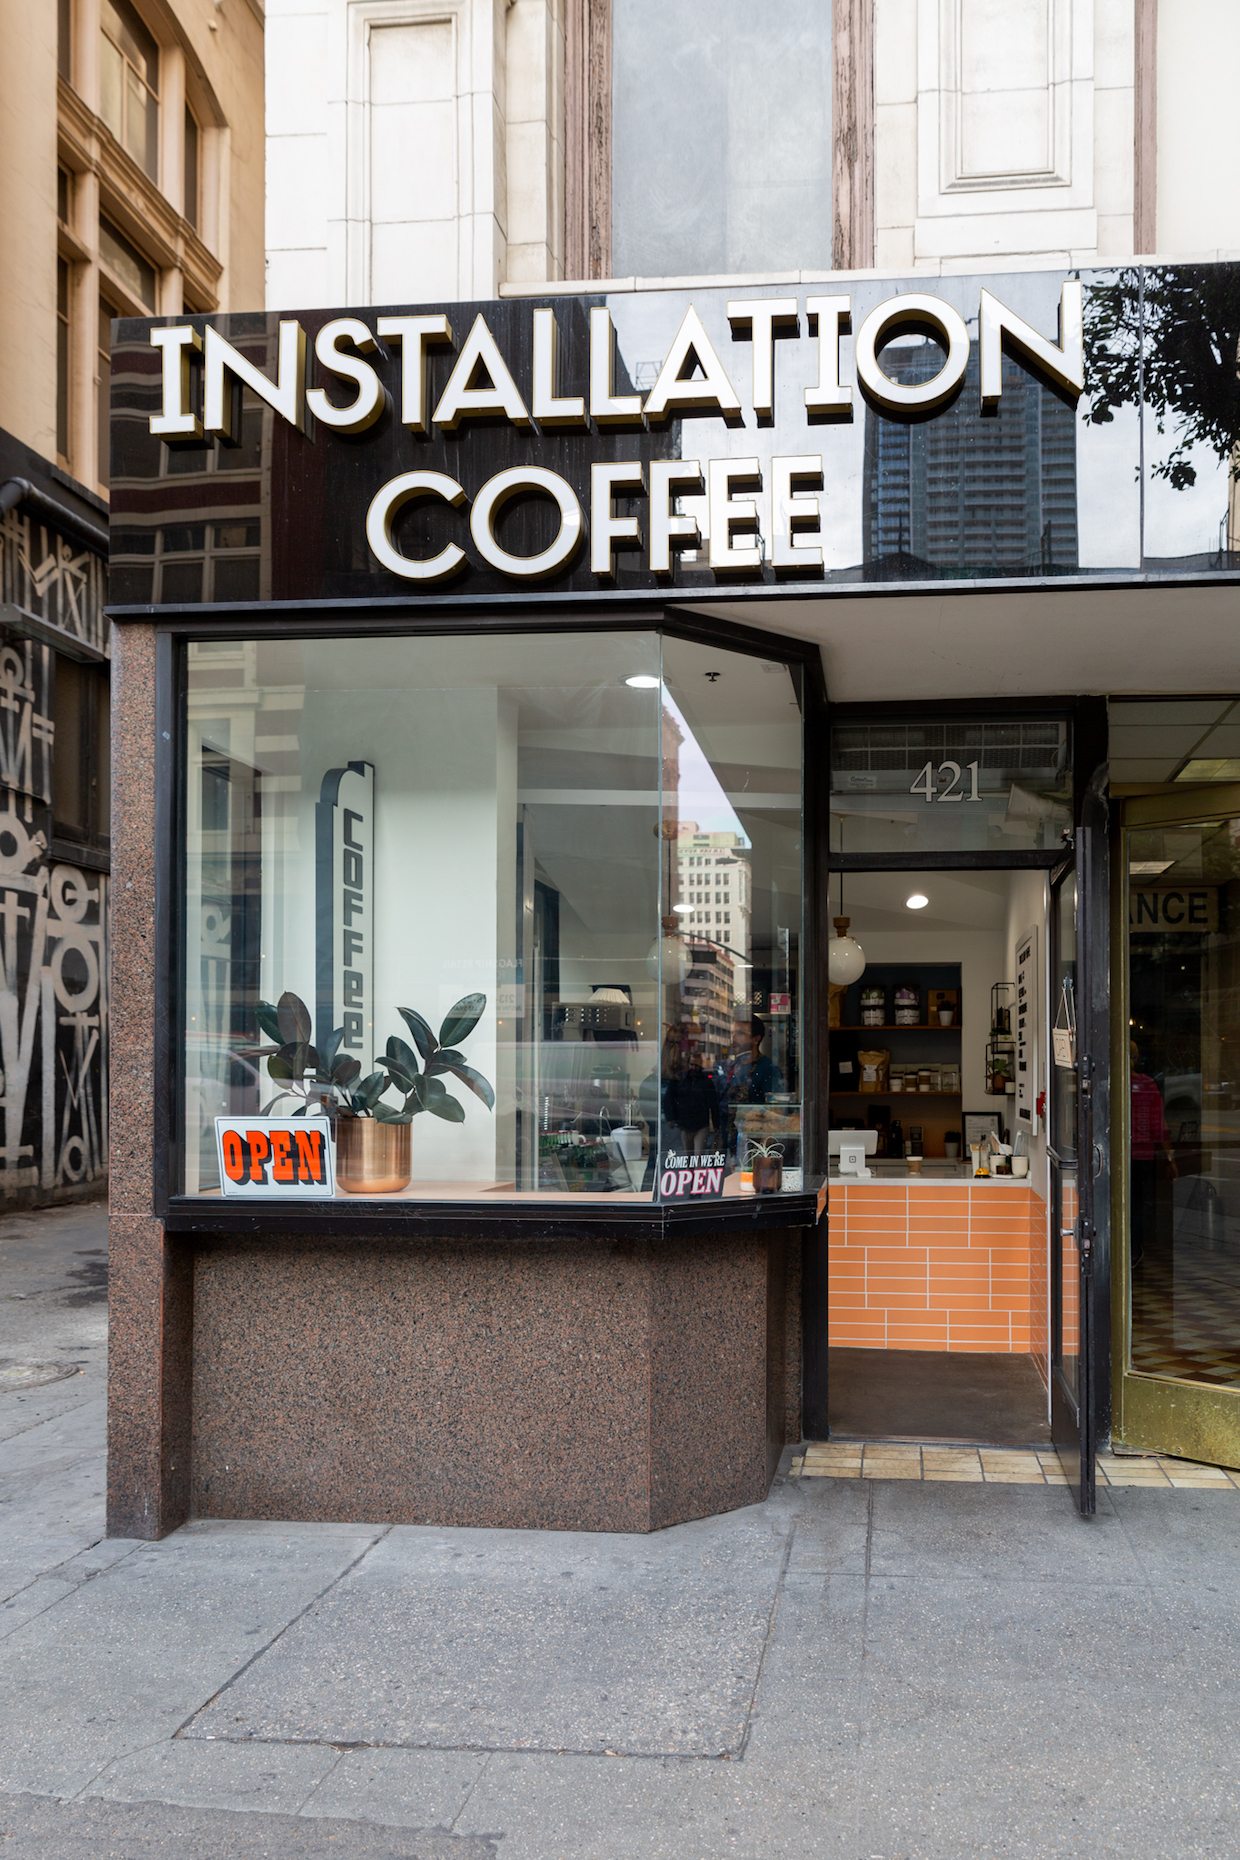 Installation Coffee Exterior3-1 copy